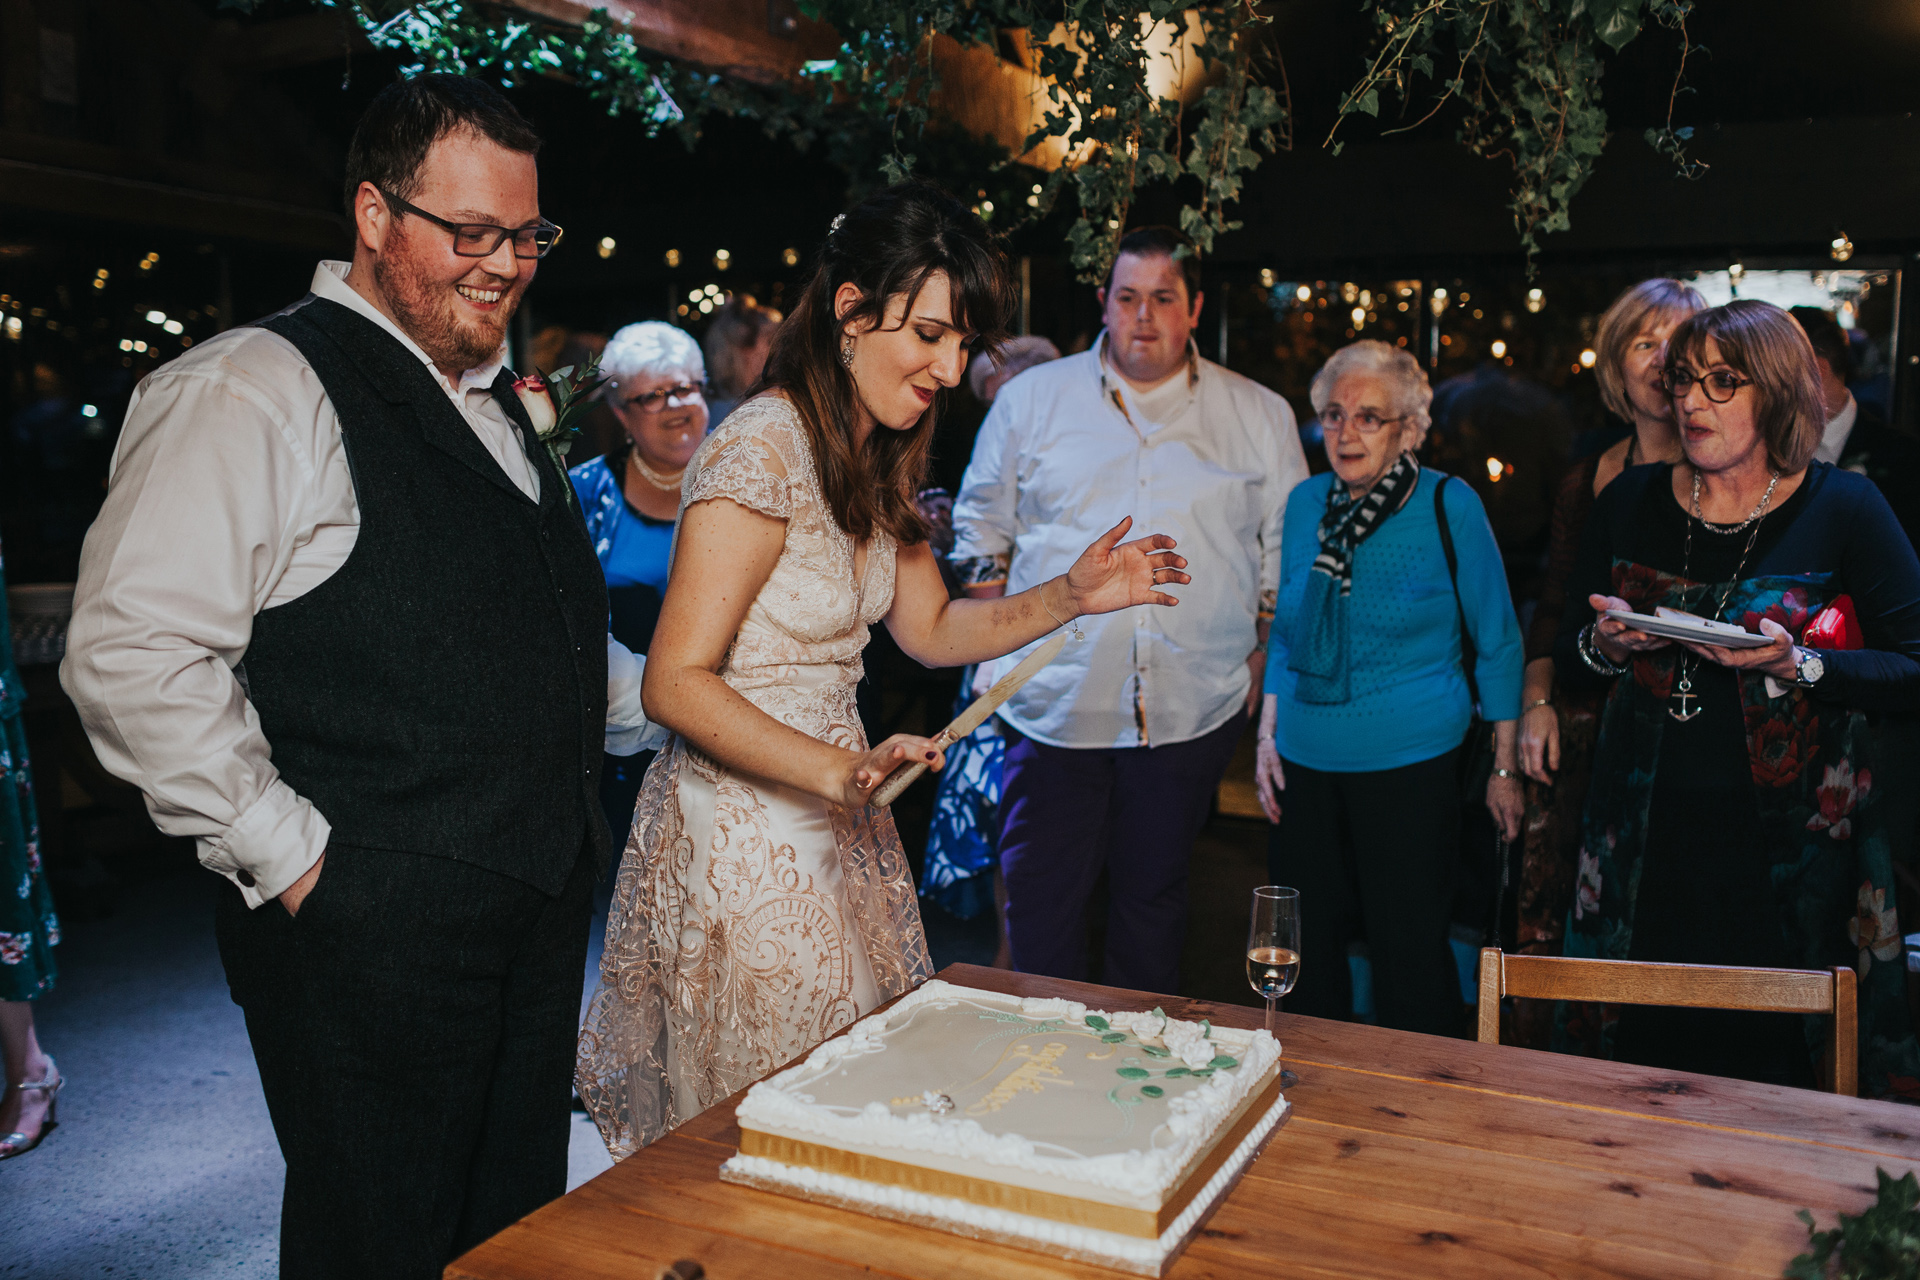 Second cake cutting.